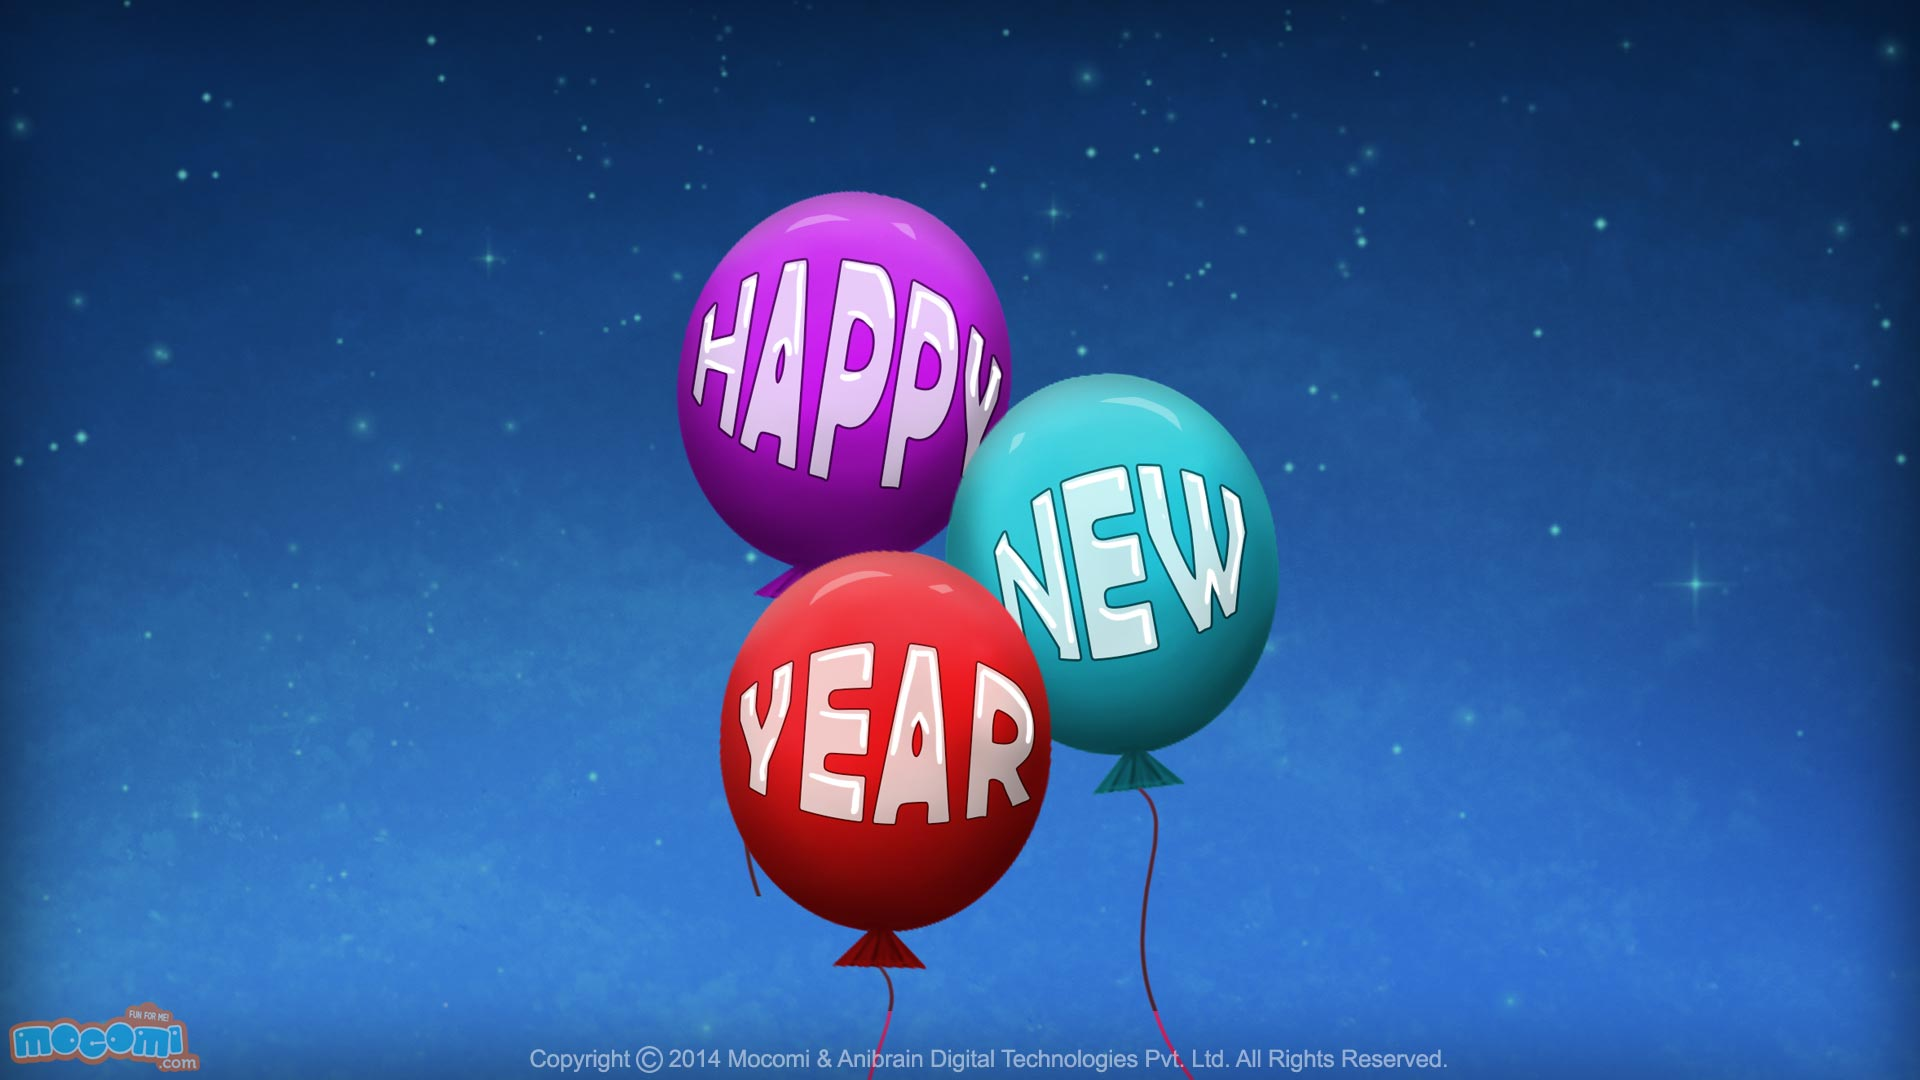 Happy New Year Wallpaper- 4